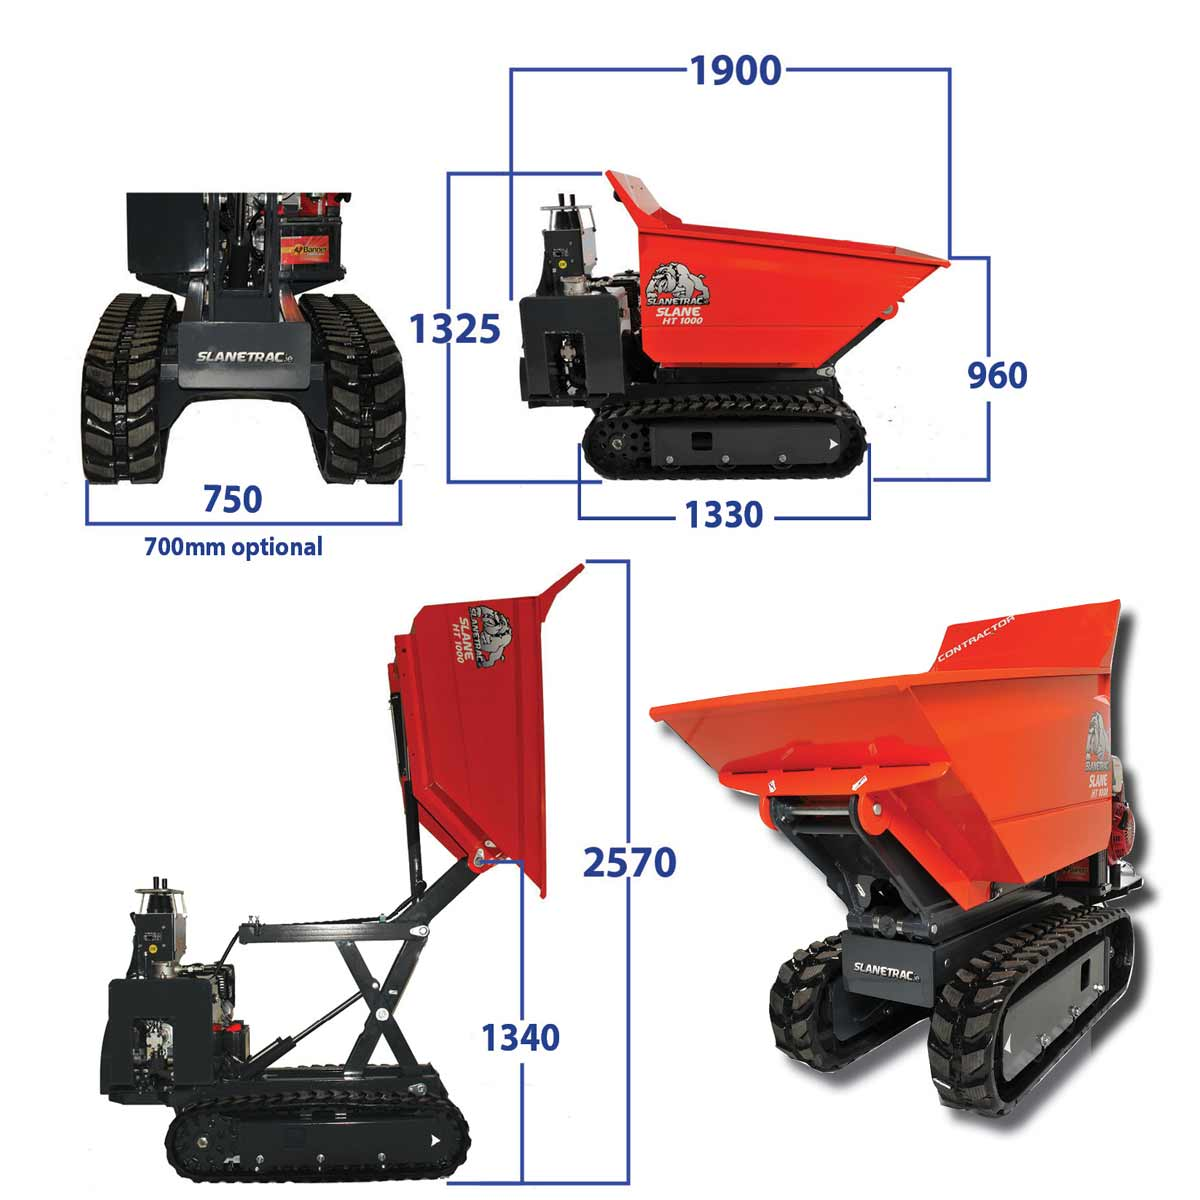 1 Tonne Tracked Skip Loader / Dumper - Specifications